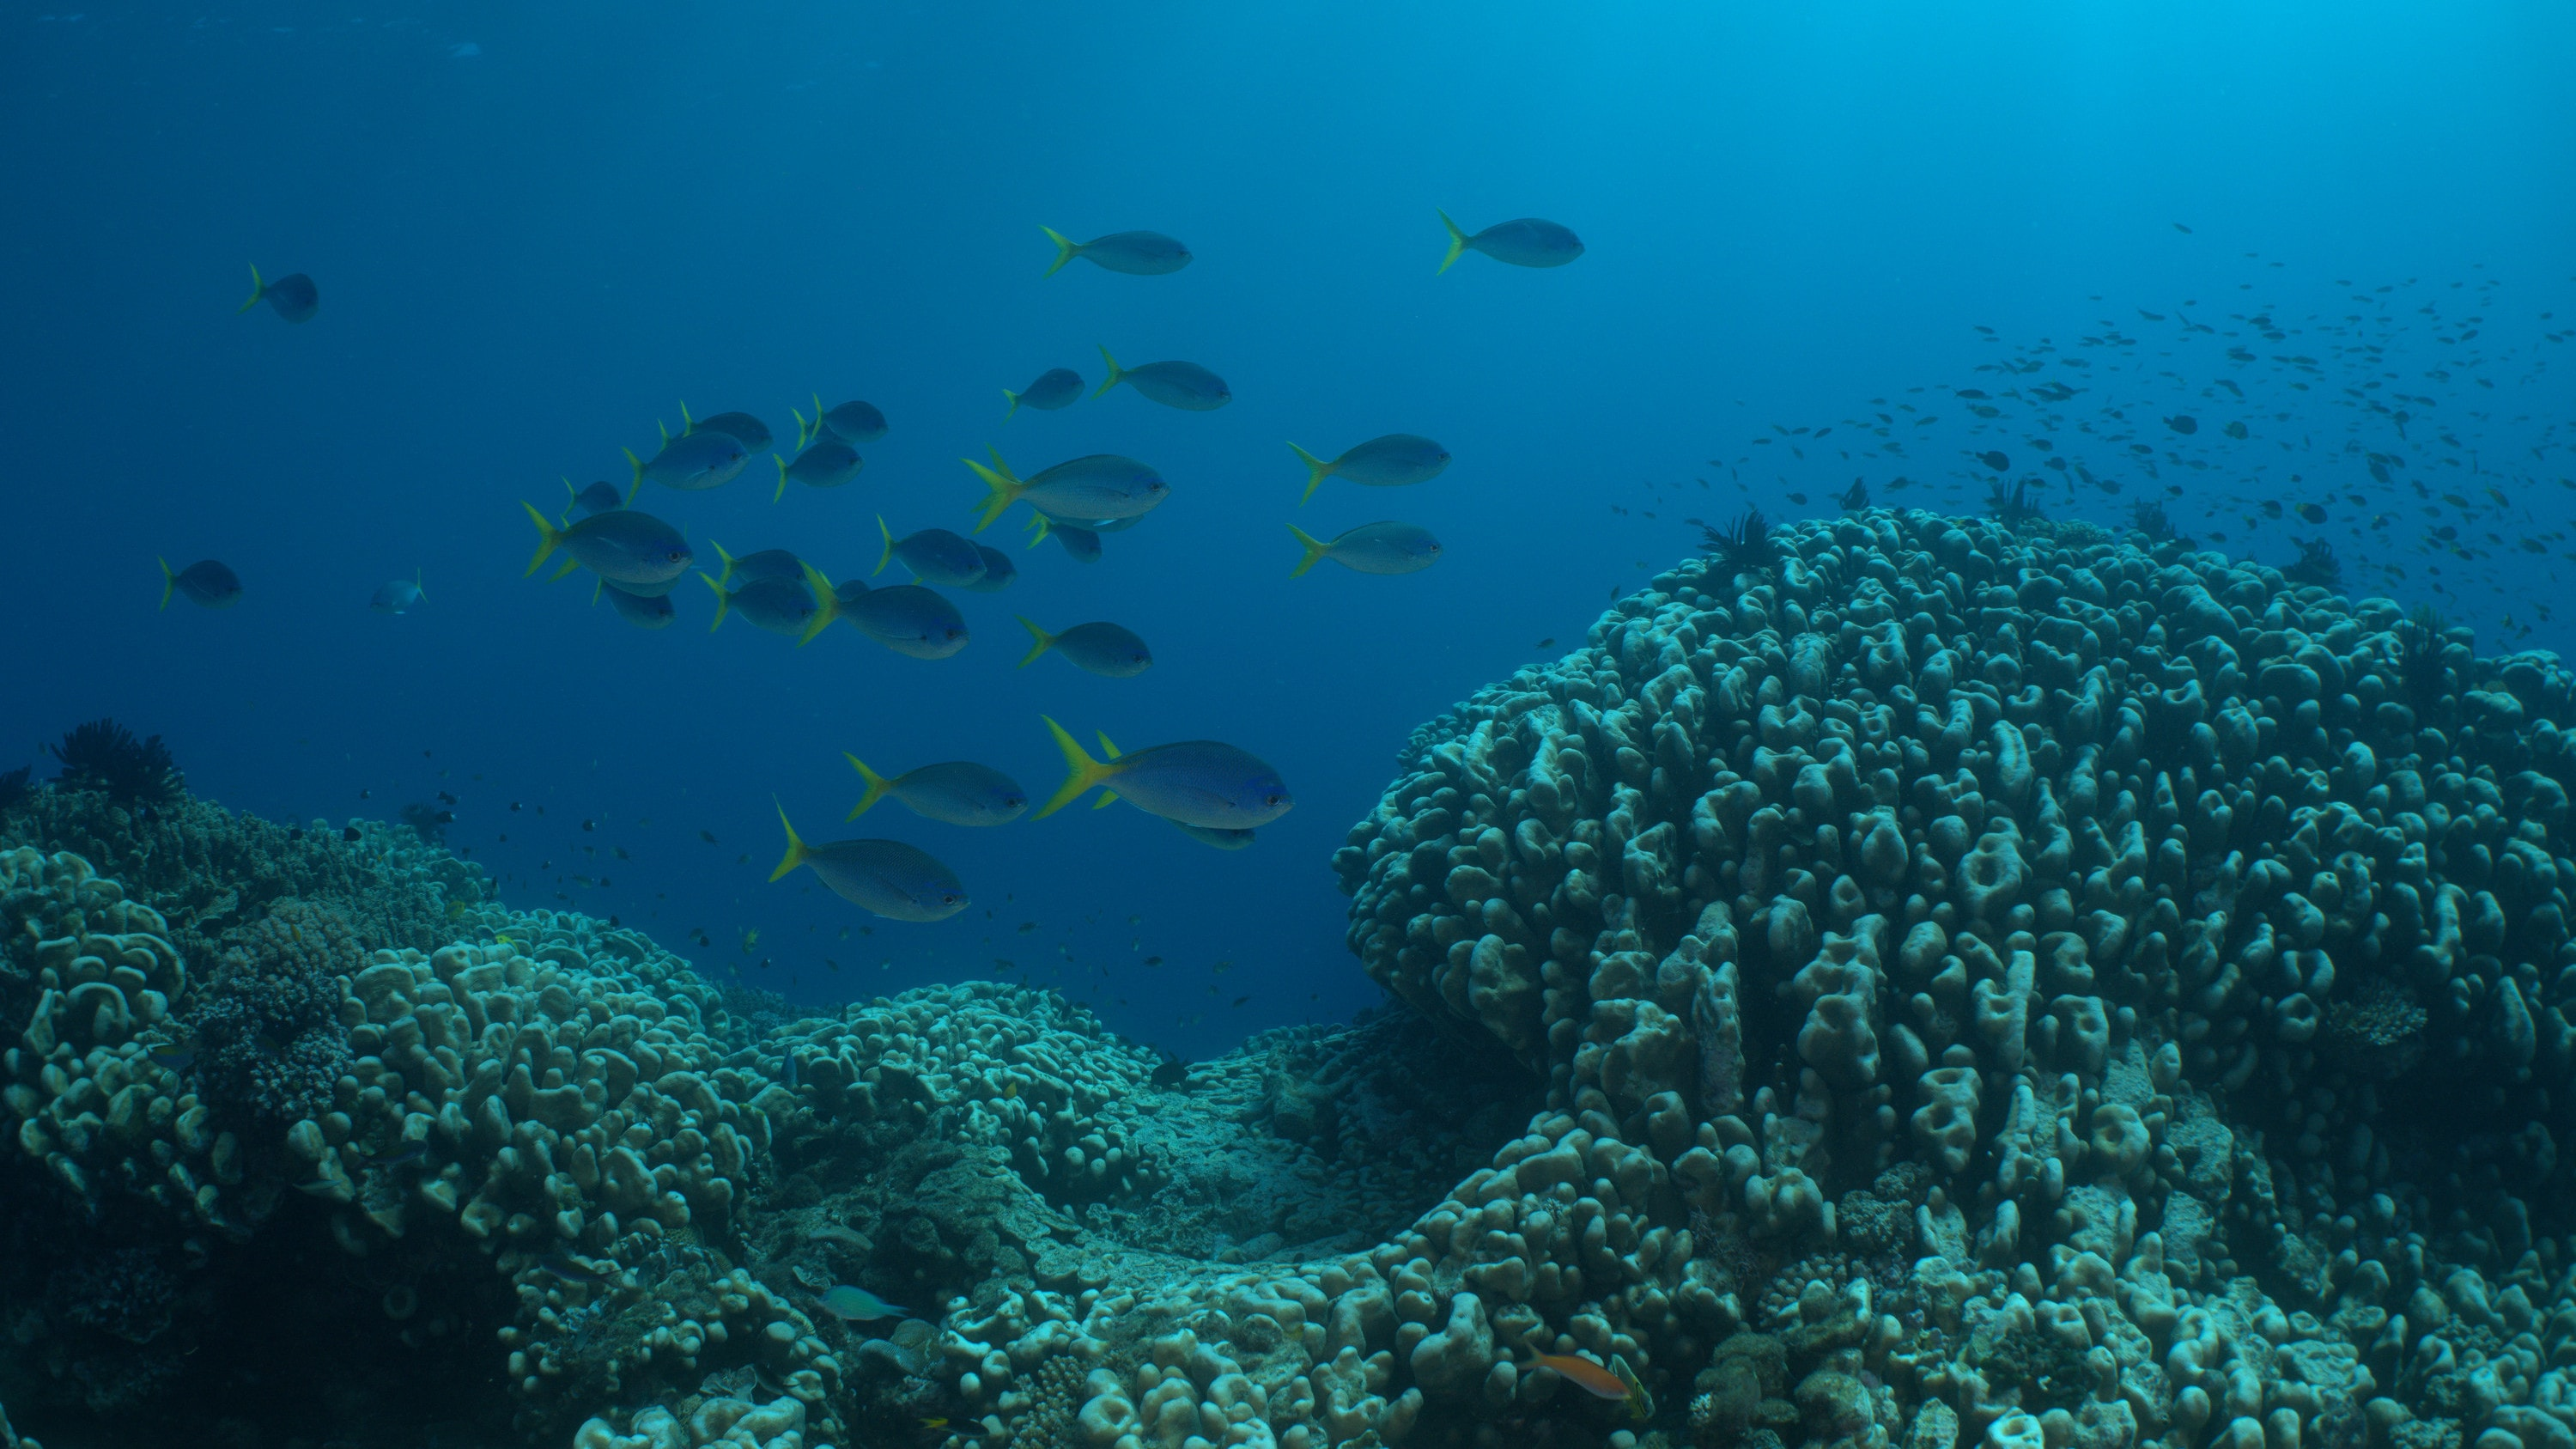 School of Yellowtail Fusilier. (National Geographic for Disney+)